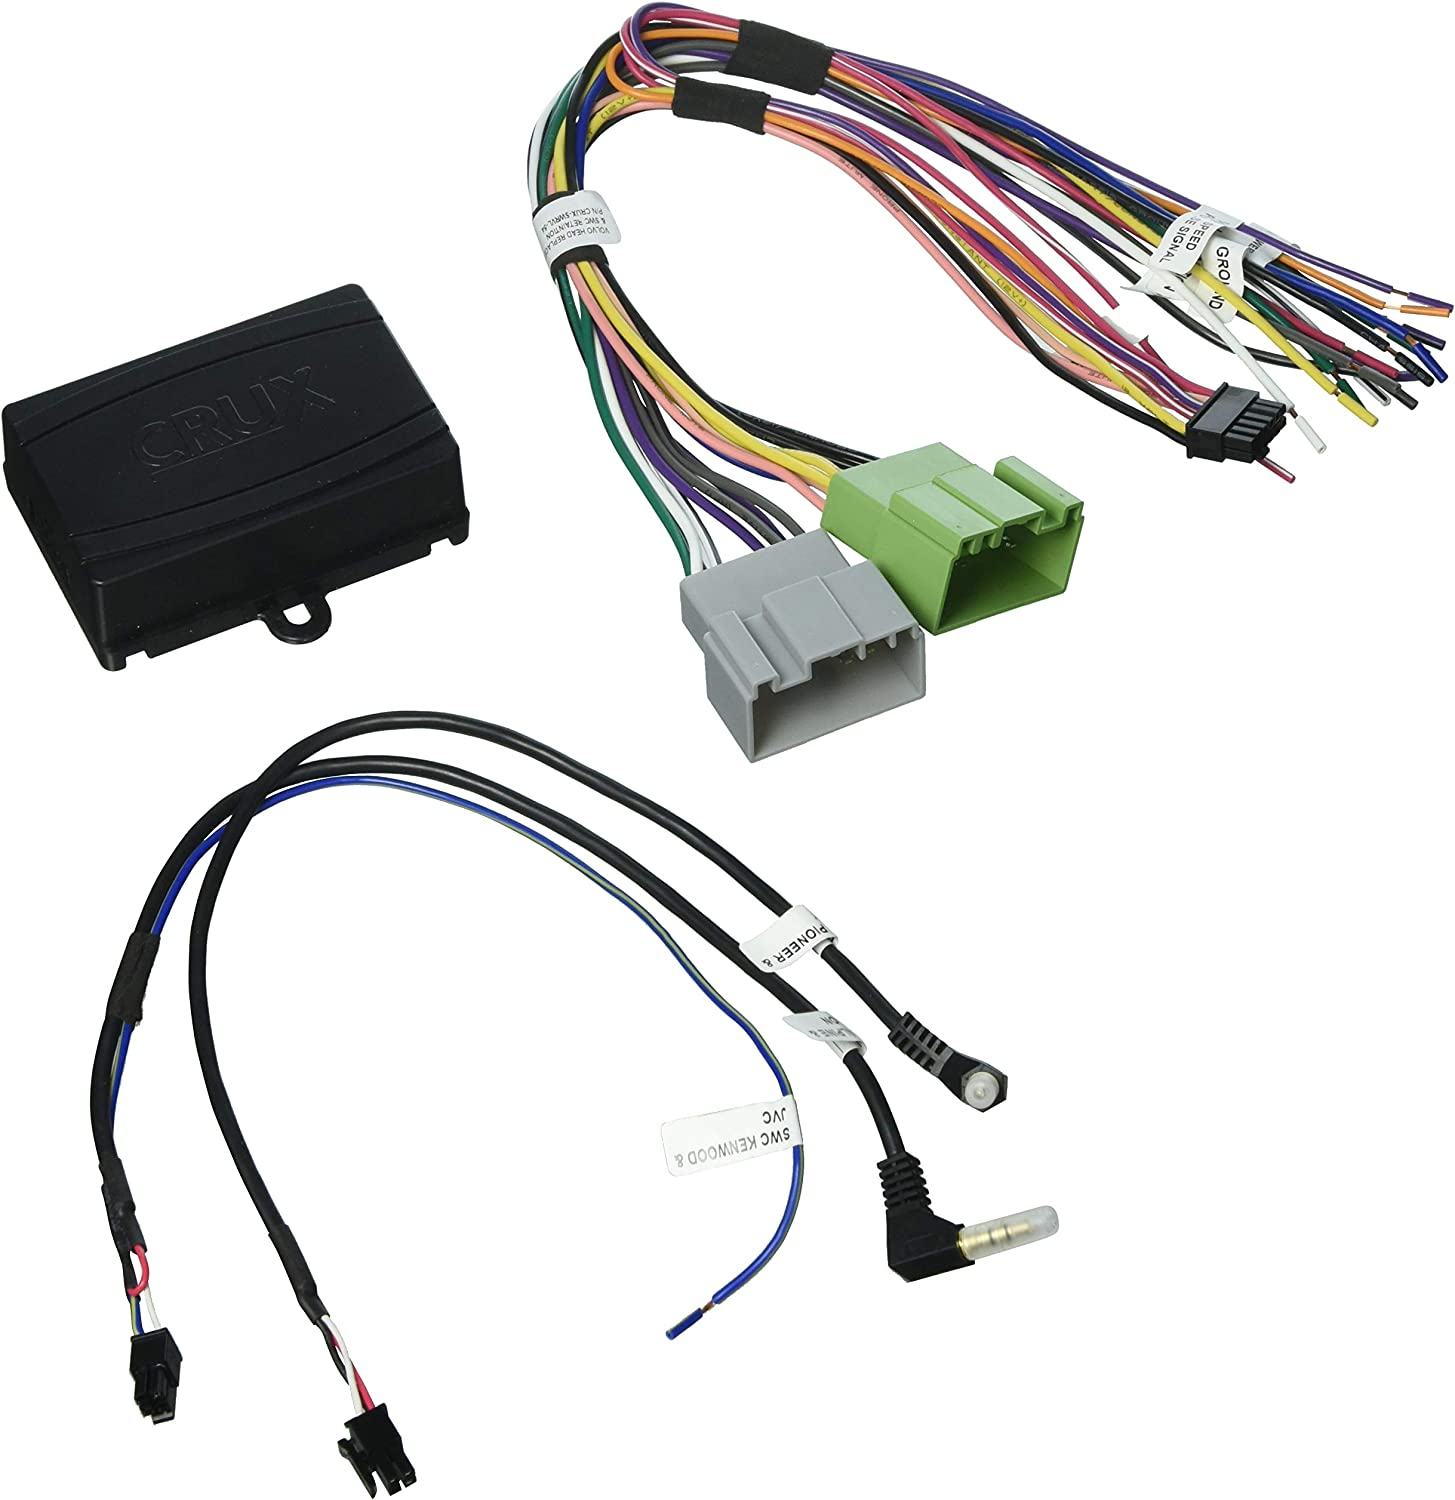 Crux USB-CHG Radio Replacement Accessories